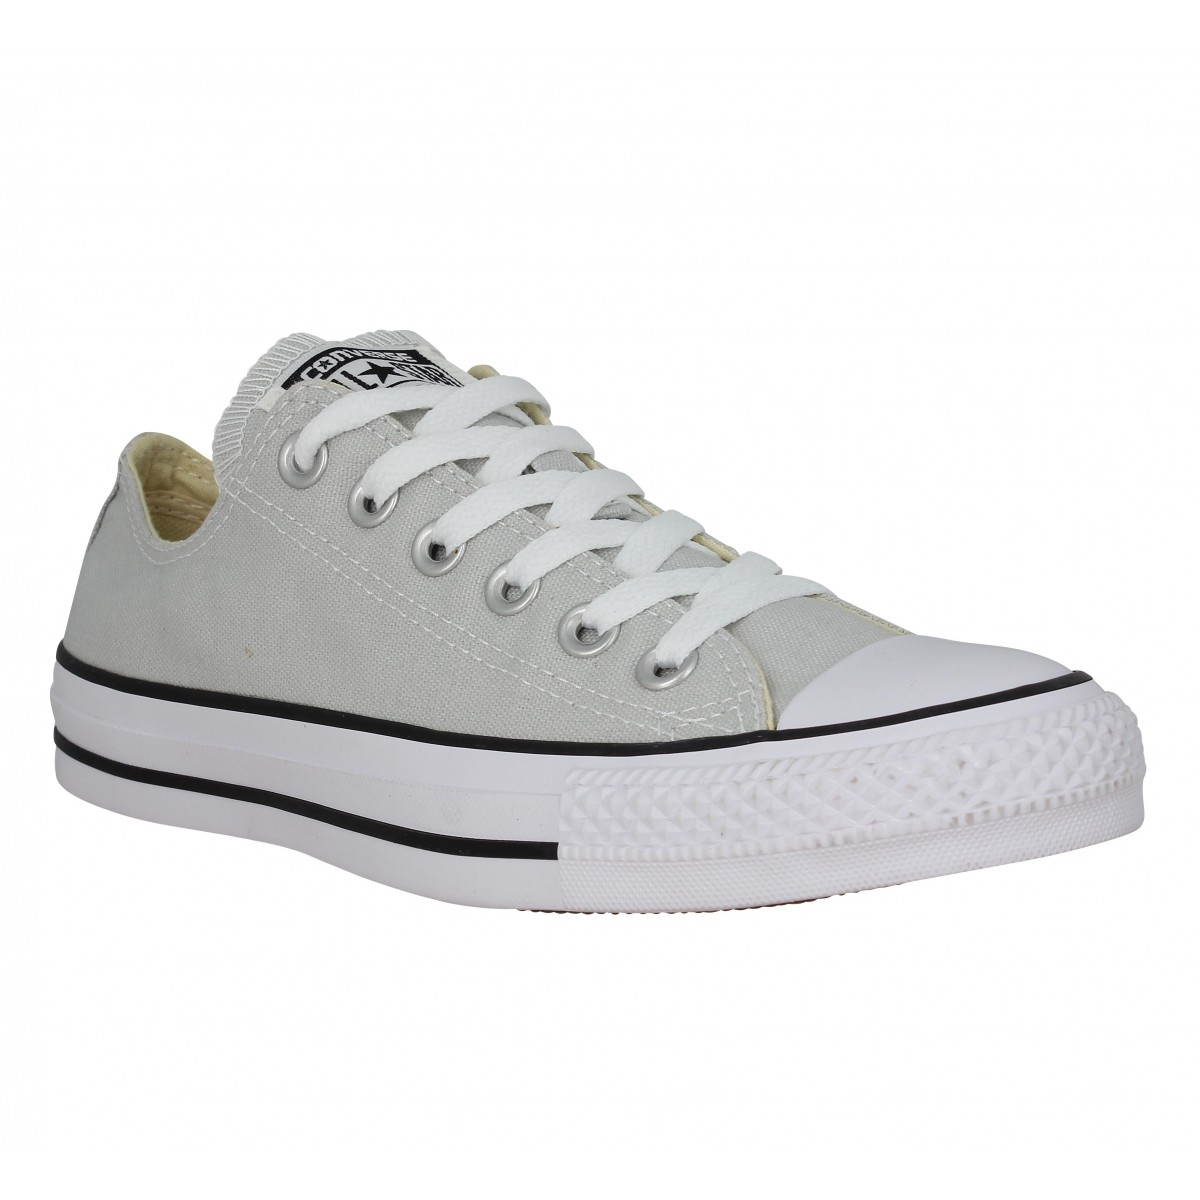 Baskets CONVERSE Chuck Taylor All Star toile Femme Mousse